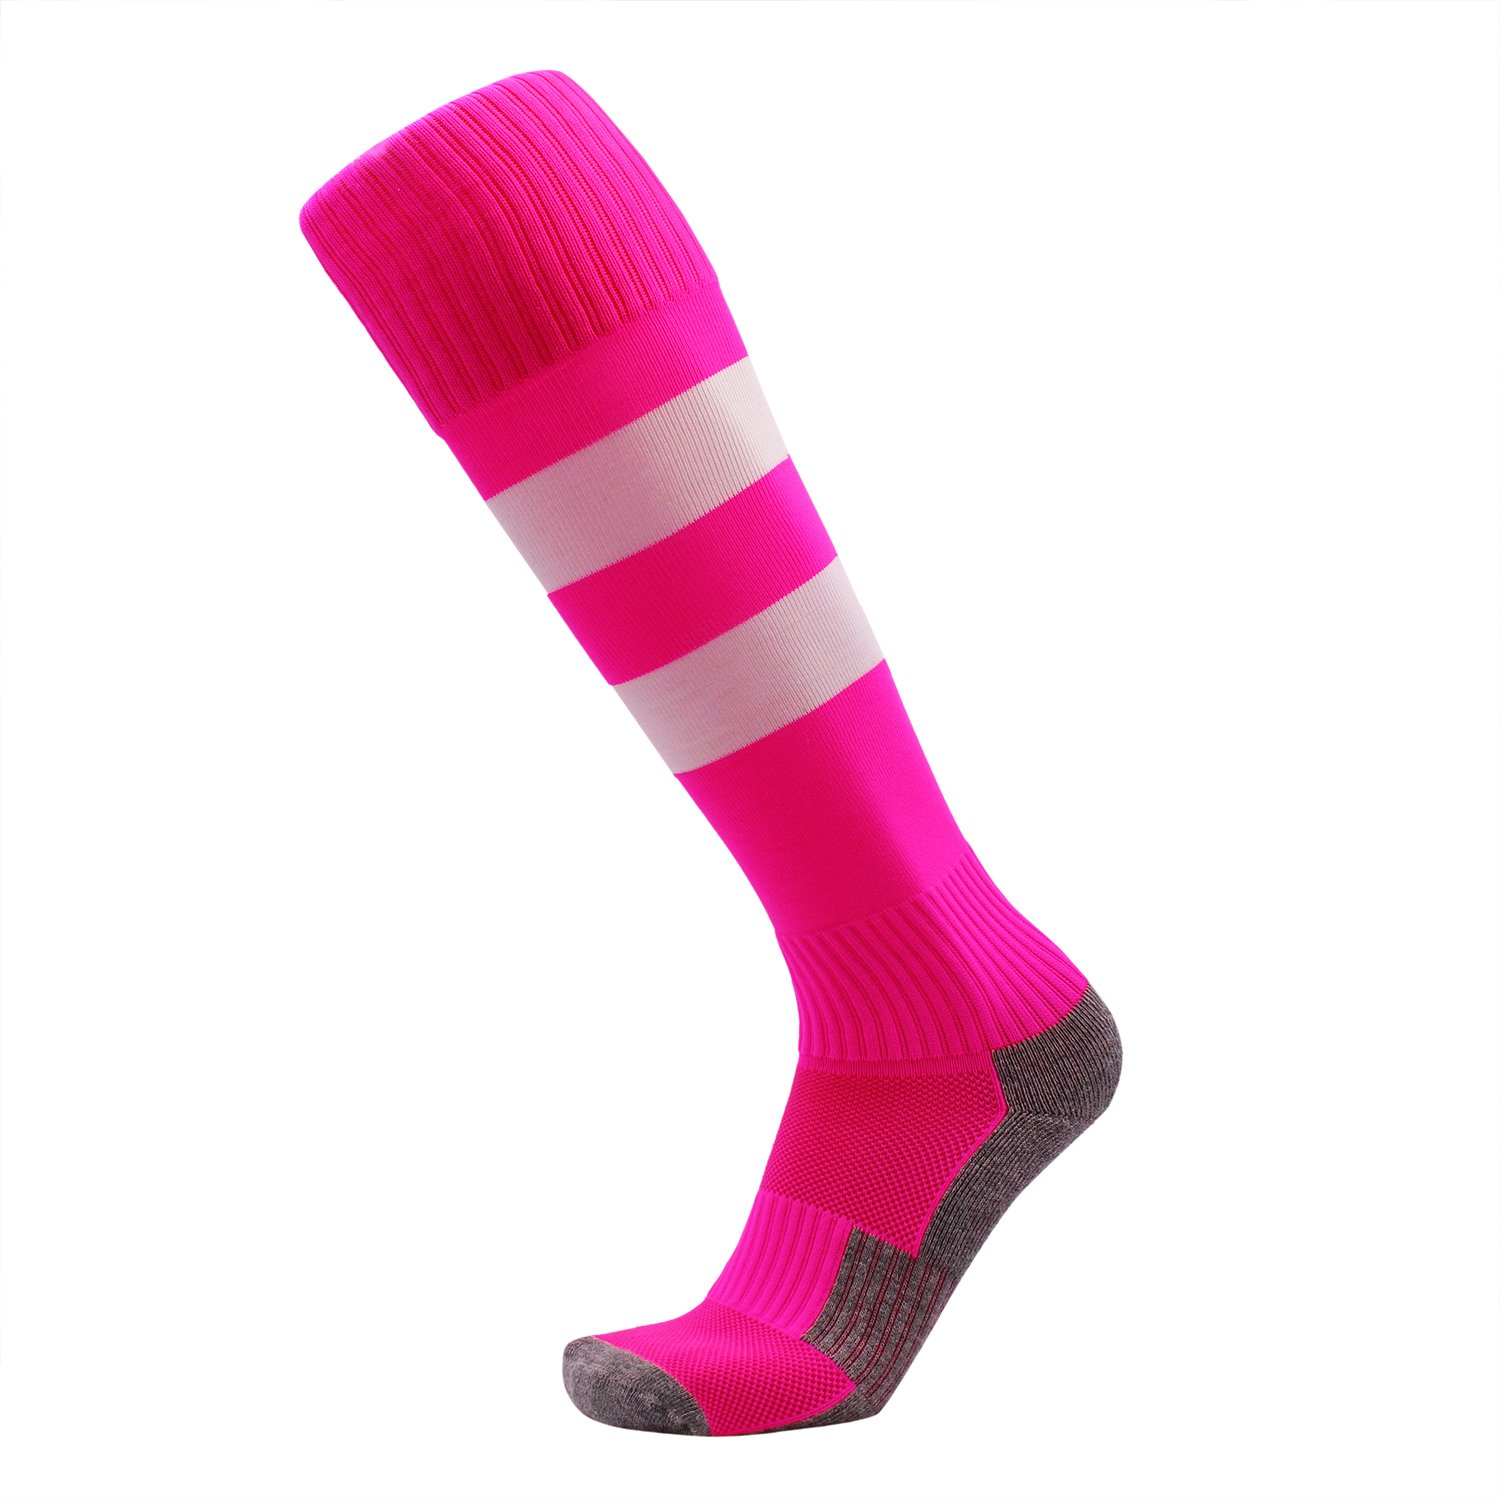 Youth Soccer Socks Boys Girls 1 / 3 / 6 Pack Knee High Stripe Compression Football Socks for Kids (7-13 Years Little Kid / Big Kid)